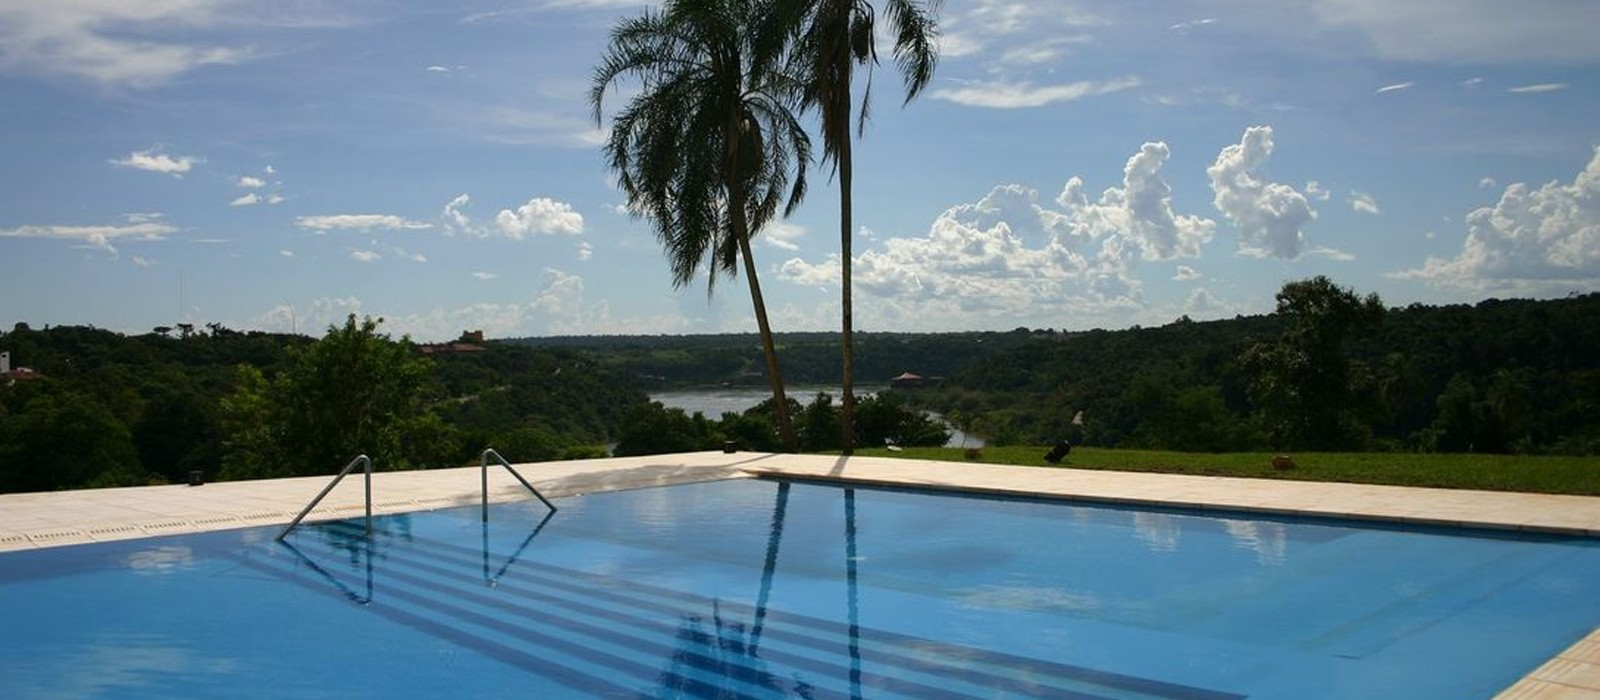 header - Panoramic Grand Hotel Iguazu - Luxury Galapagos holiday packages